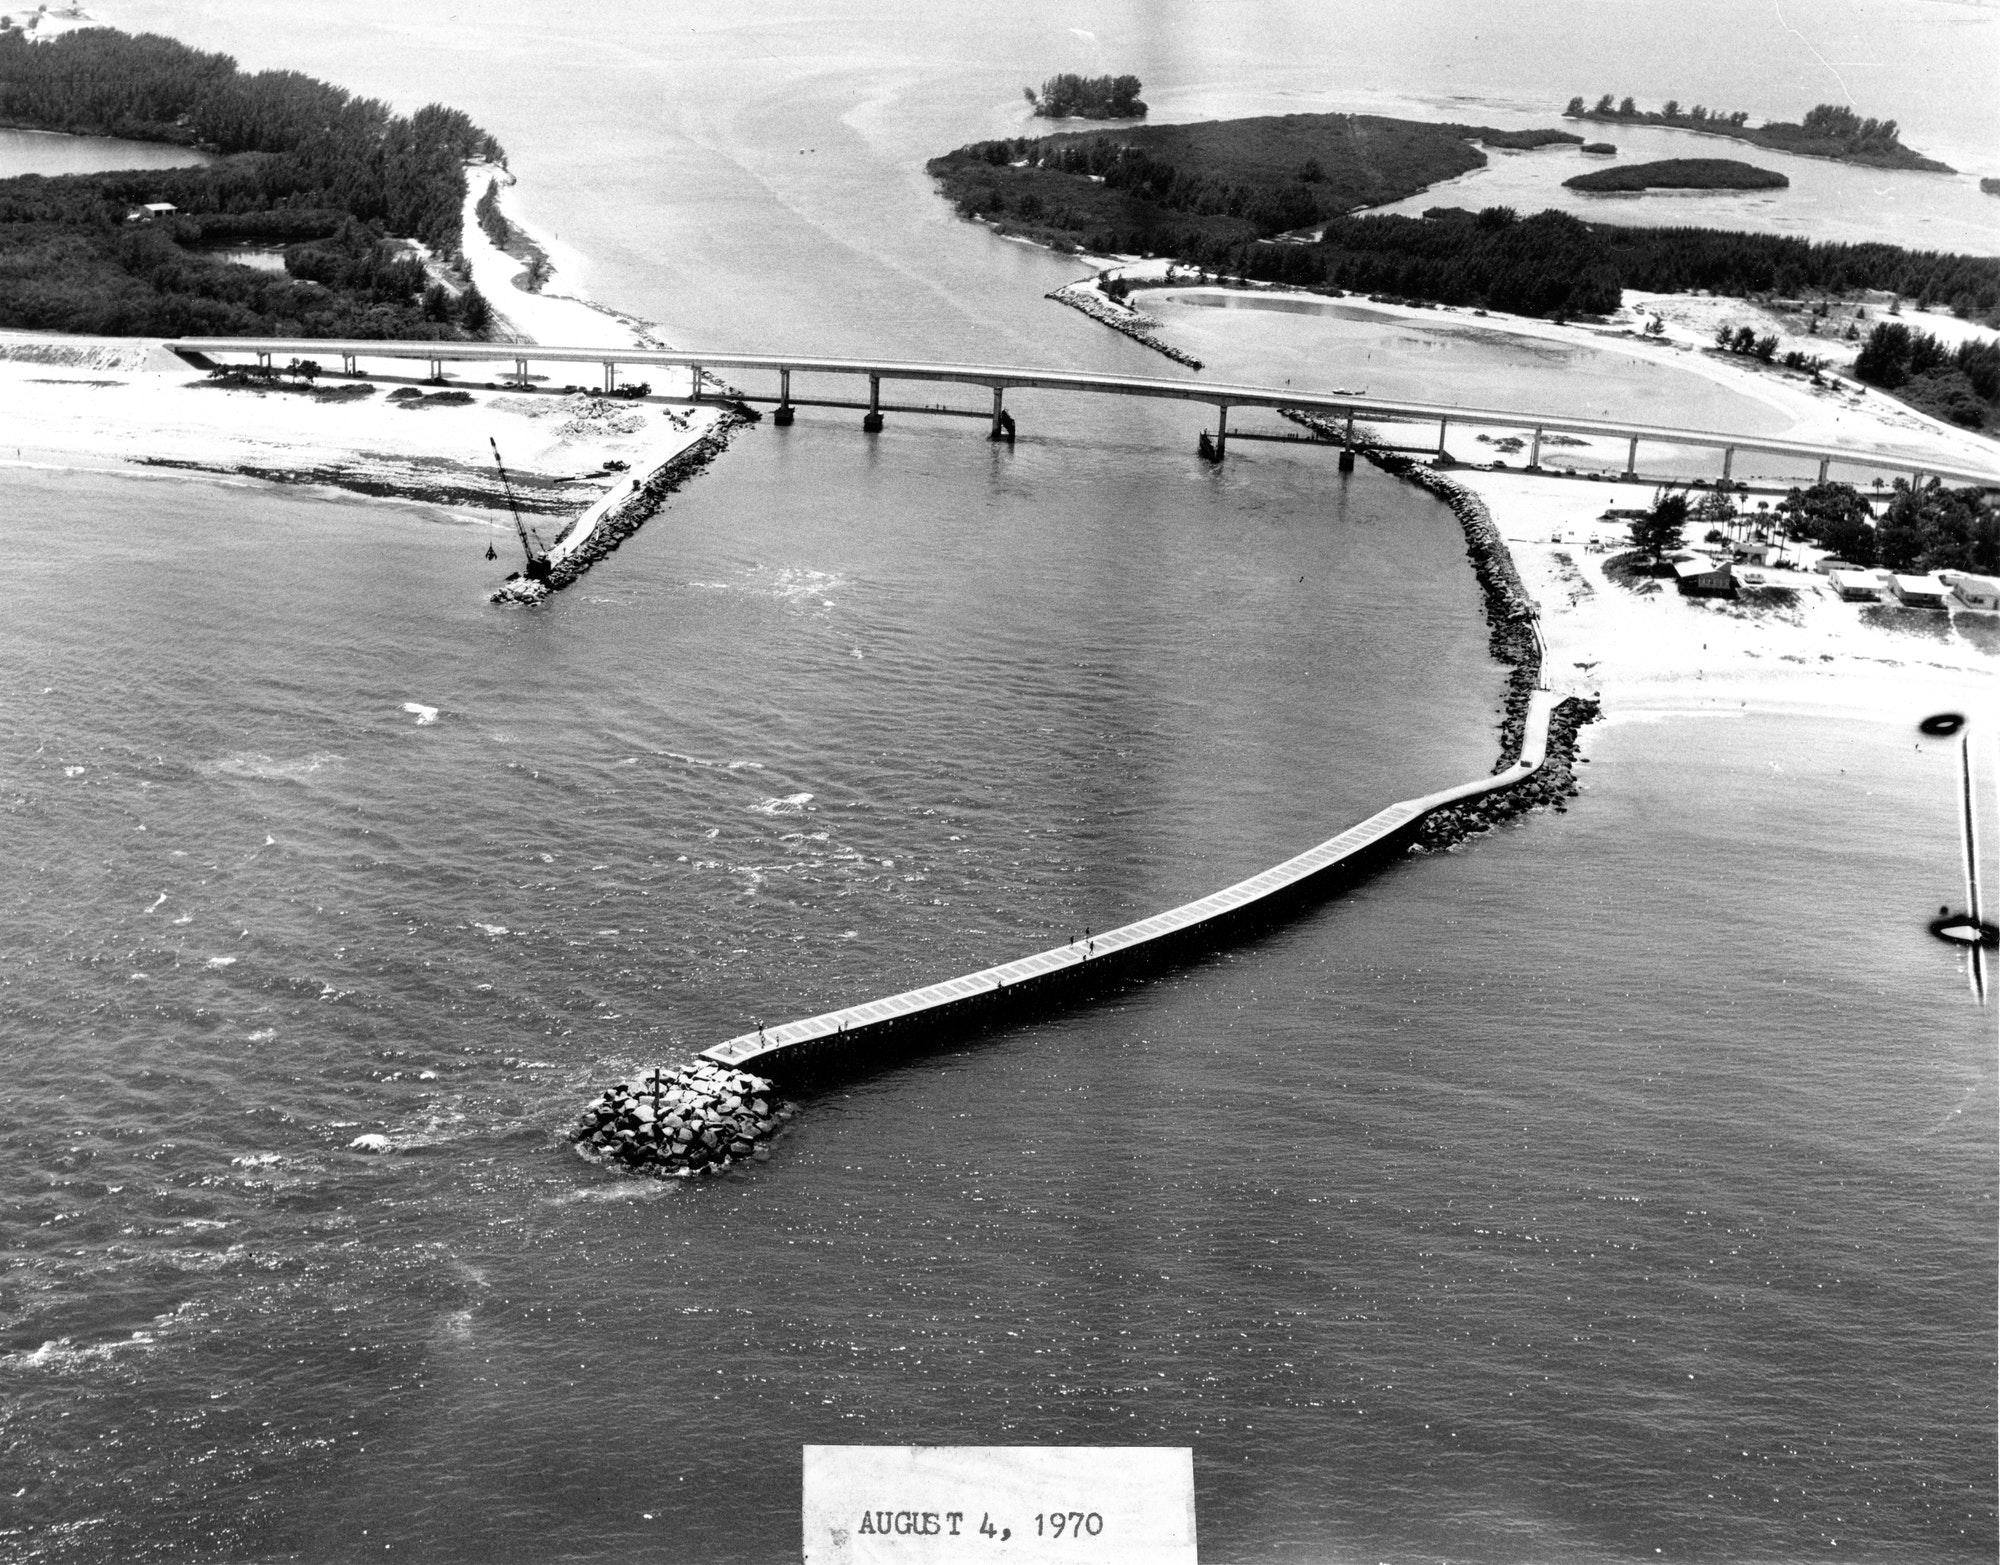 aerial view of inlet entrance looking West showing completed north jetty, construction work on south jetty and bridge